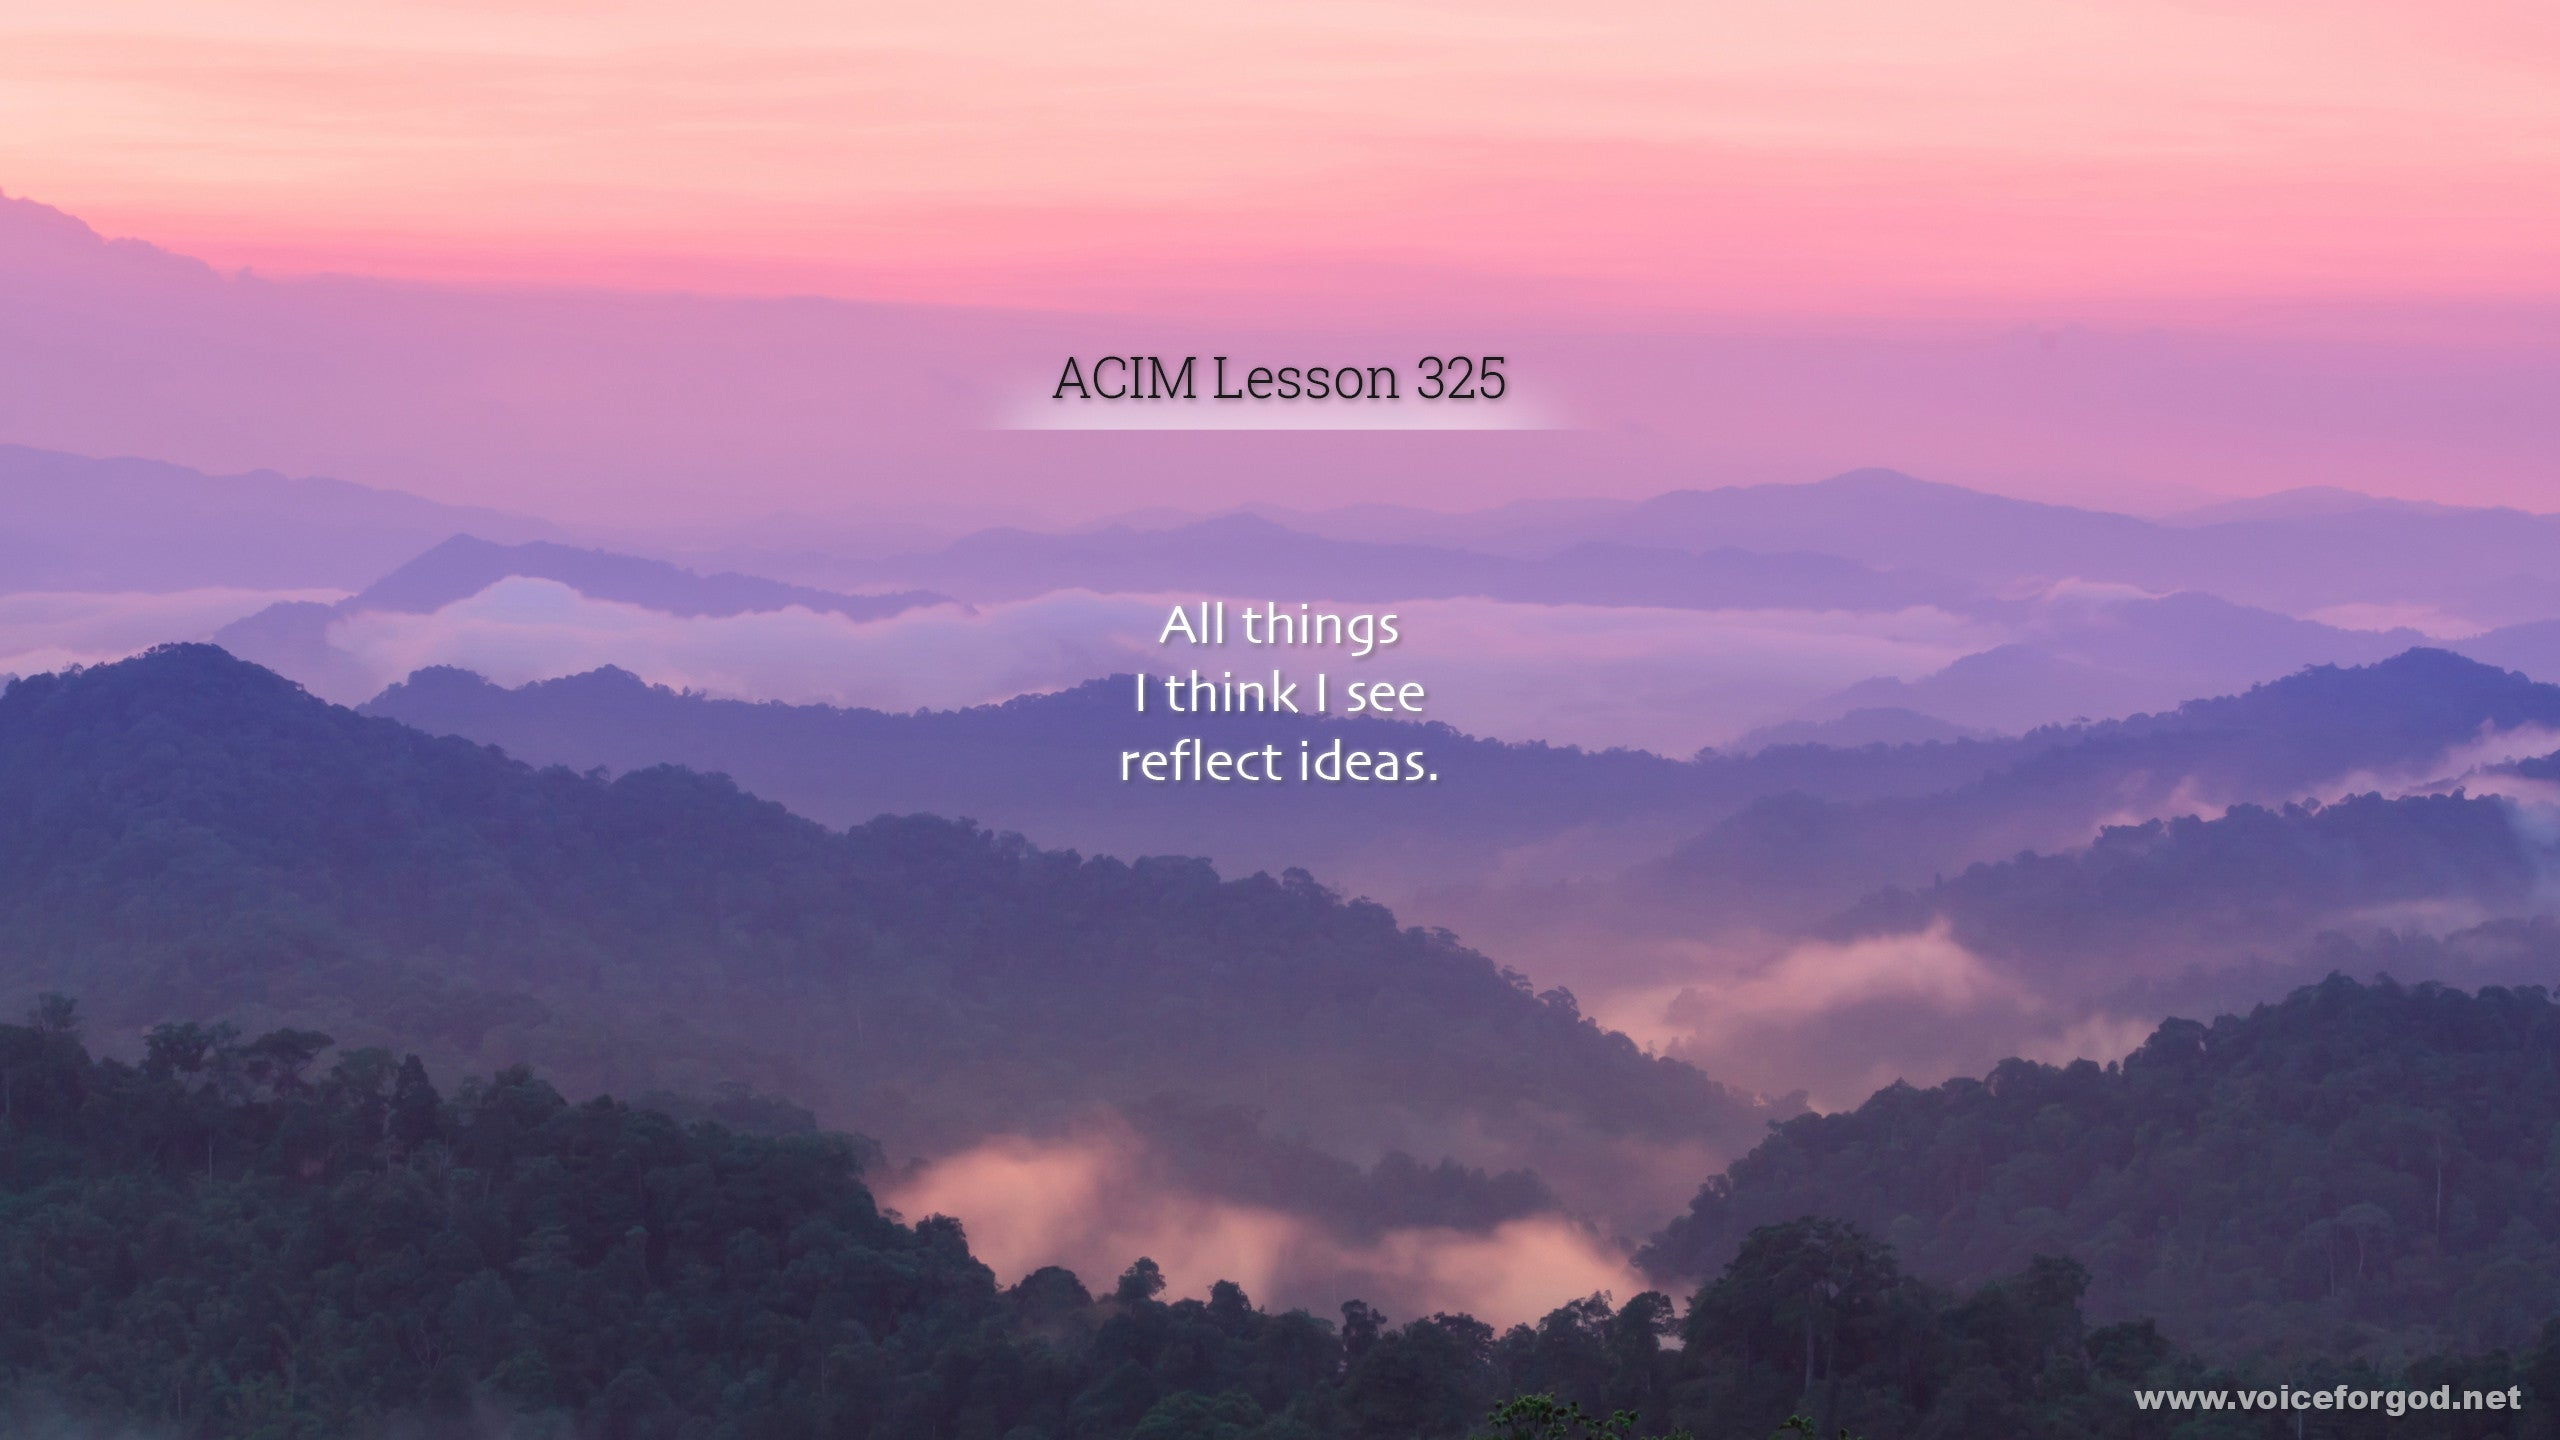 ACIM Lesson 325 - A Course in Miracles Workbook Lesson 325